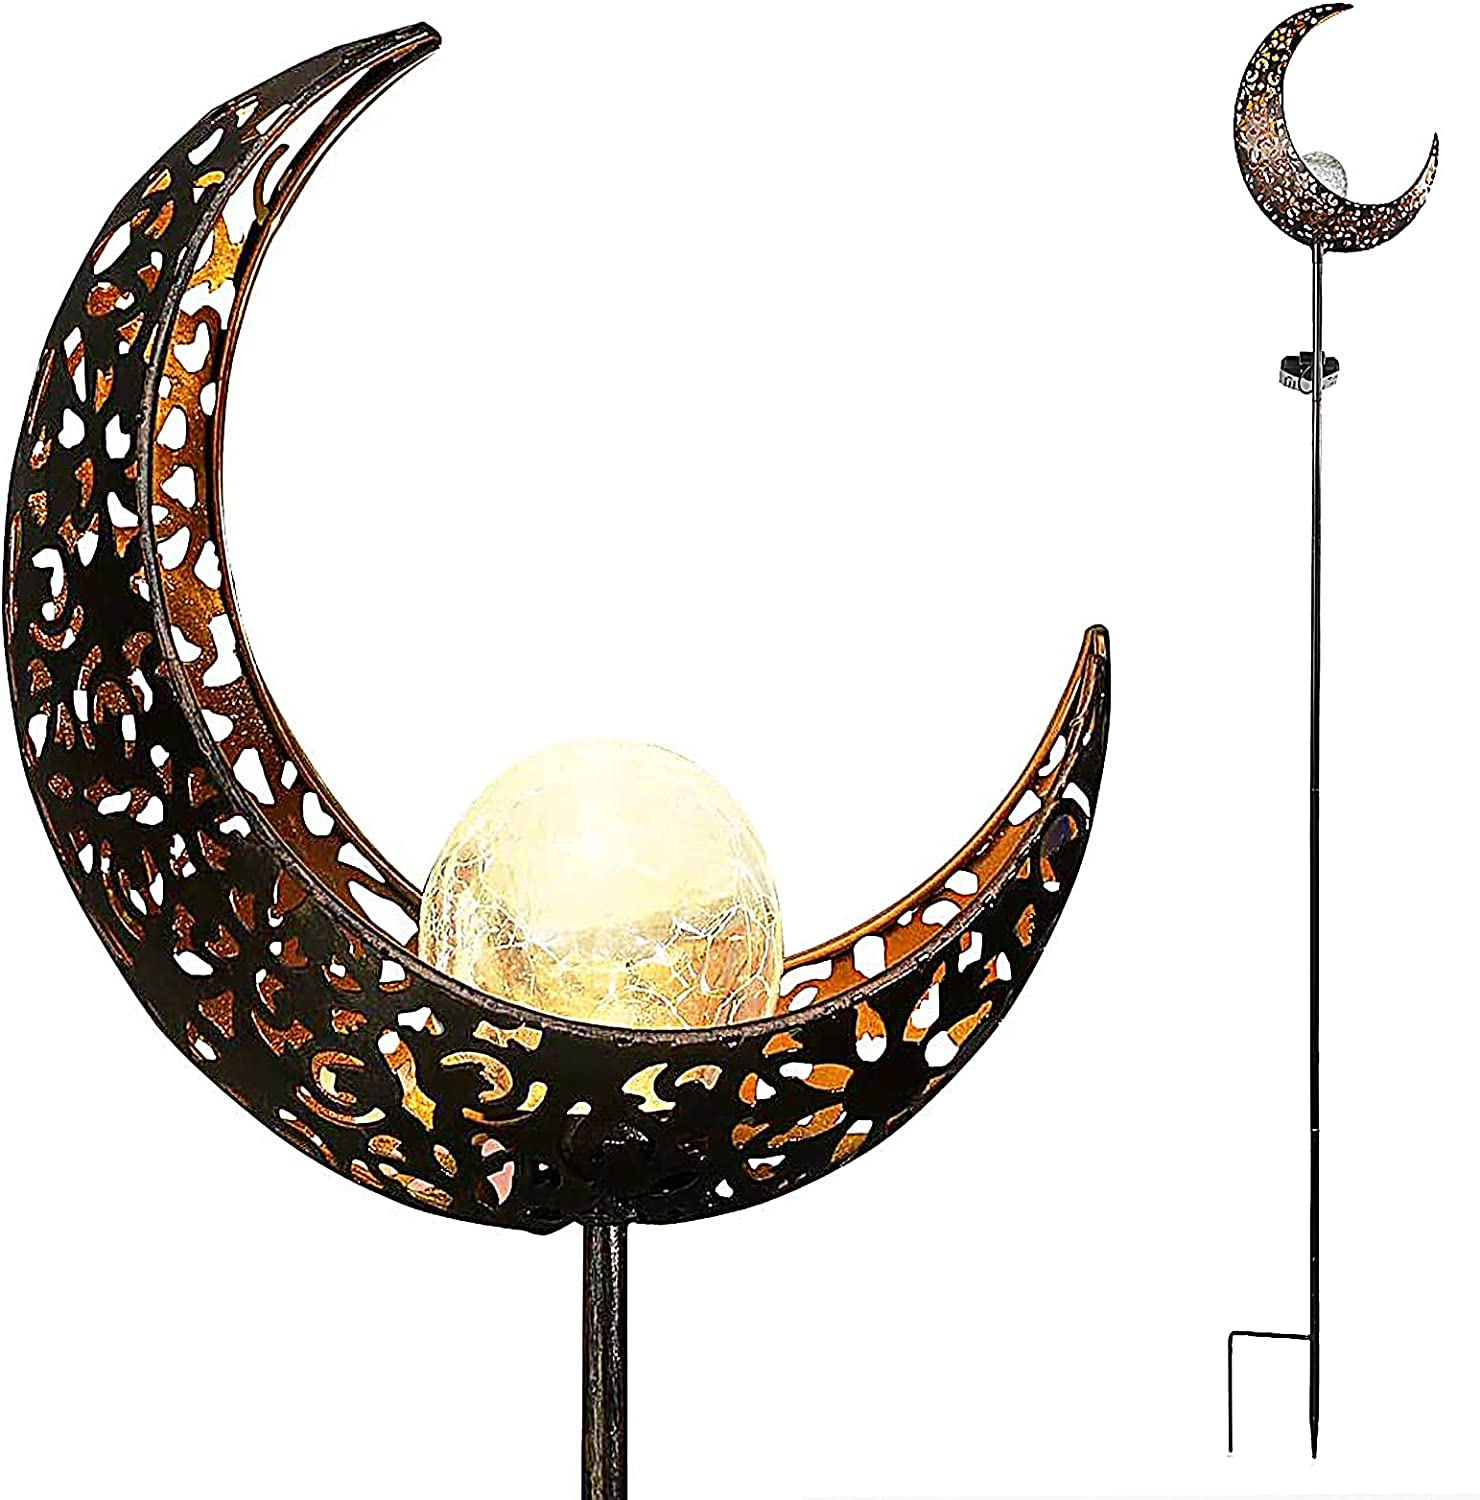 Starryfill Garden Solar Lights Outdoor Bronze Moon Crackle Glass Globe Stake Metal Lights Waterproof Warm White LED for Pathway Lawn Patio or Courtyard